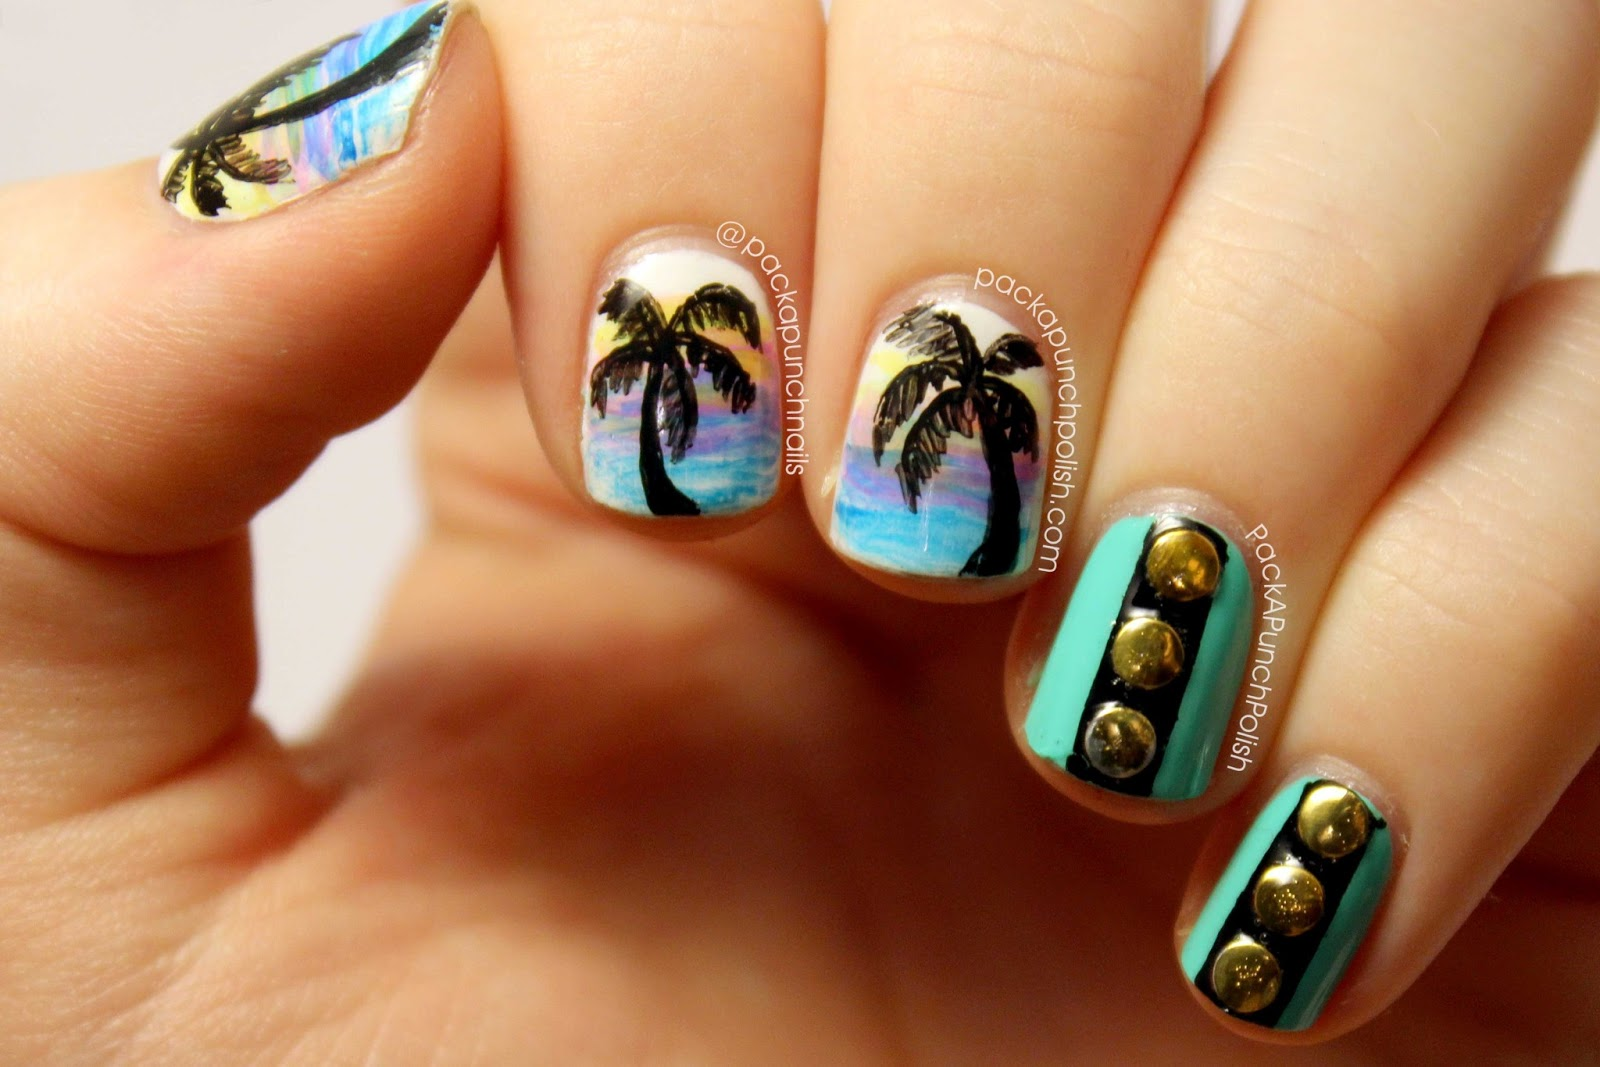 Nail Art Ideas » Nail Art Palm Trees - Pictures of Nail Art Design Ideas